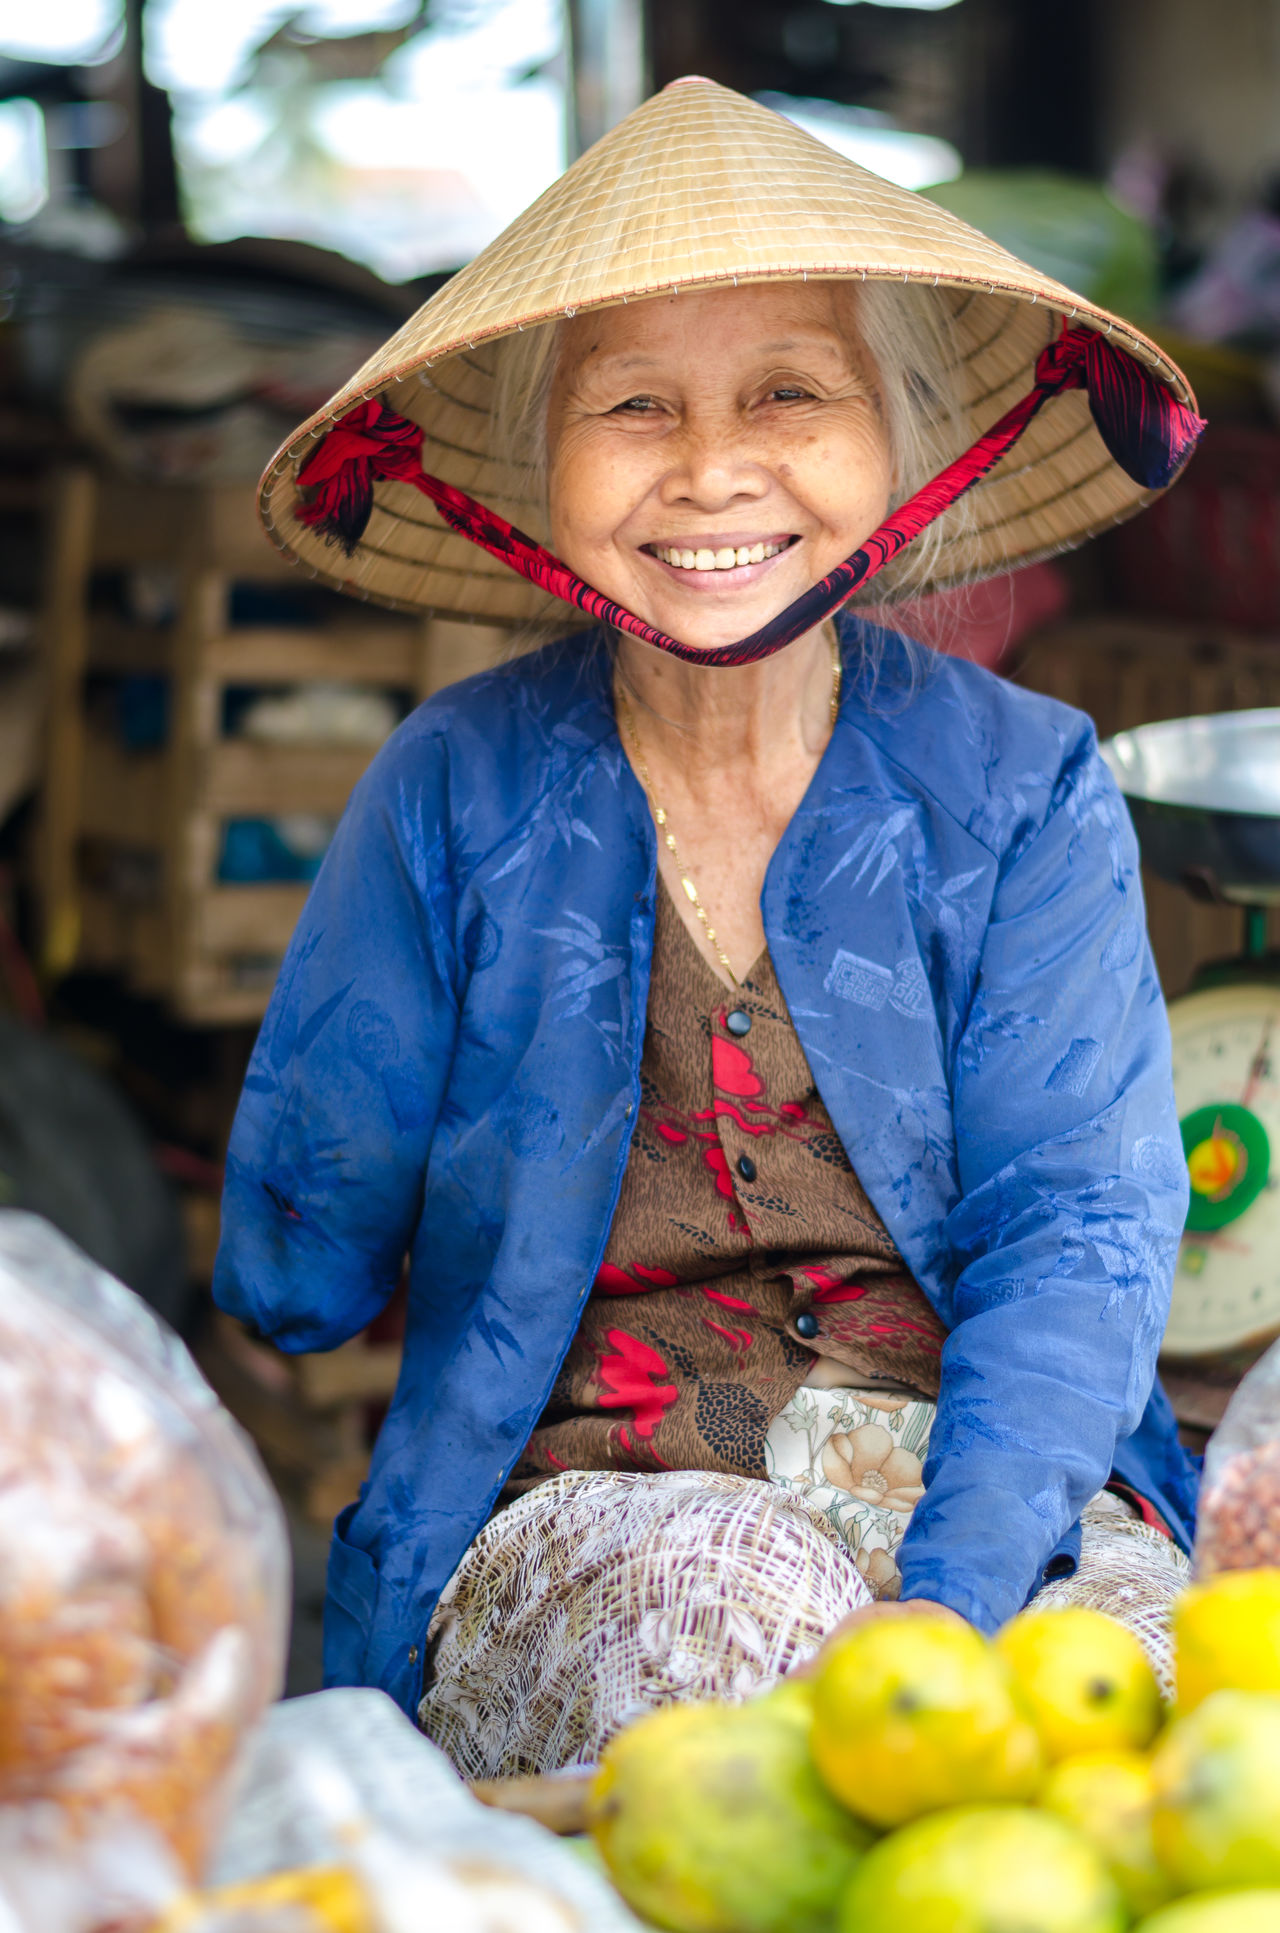 Market Tradition Portrait Farm Market Stall People Cheerful Happiness Smiling One Person Women Portraits Women Around The World Traditional Culture Vietnam Reisefotografie Backpacking Vietnamese Looking At Camera World Market Hoi An HoiAnancienttown Hoian Old Town Hoian, Vietnam Travel Destinations